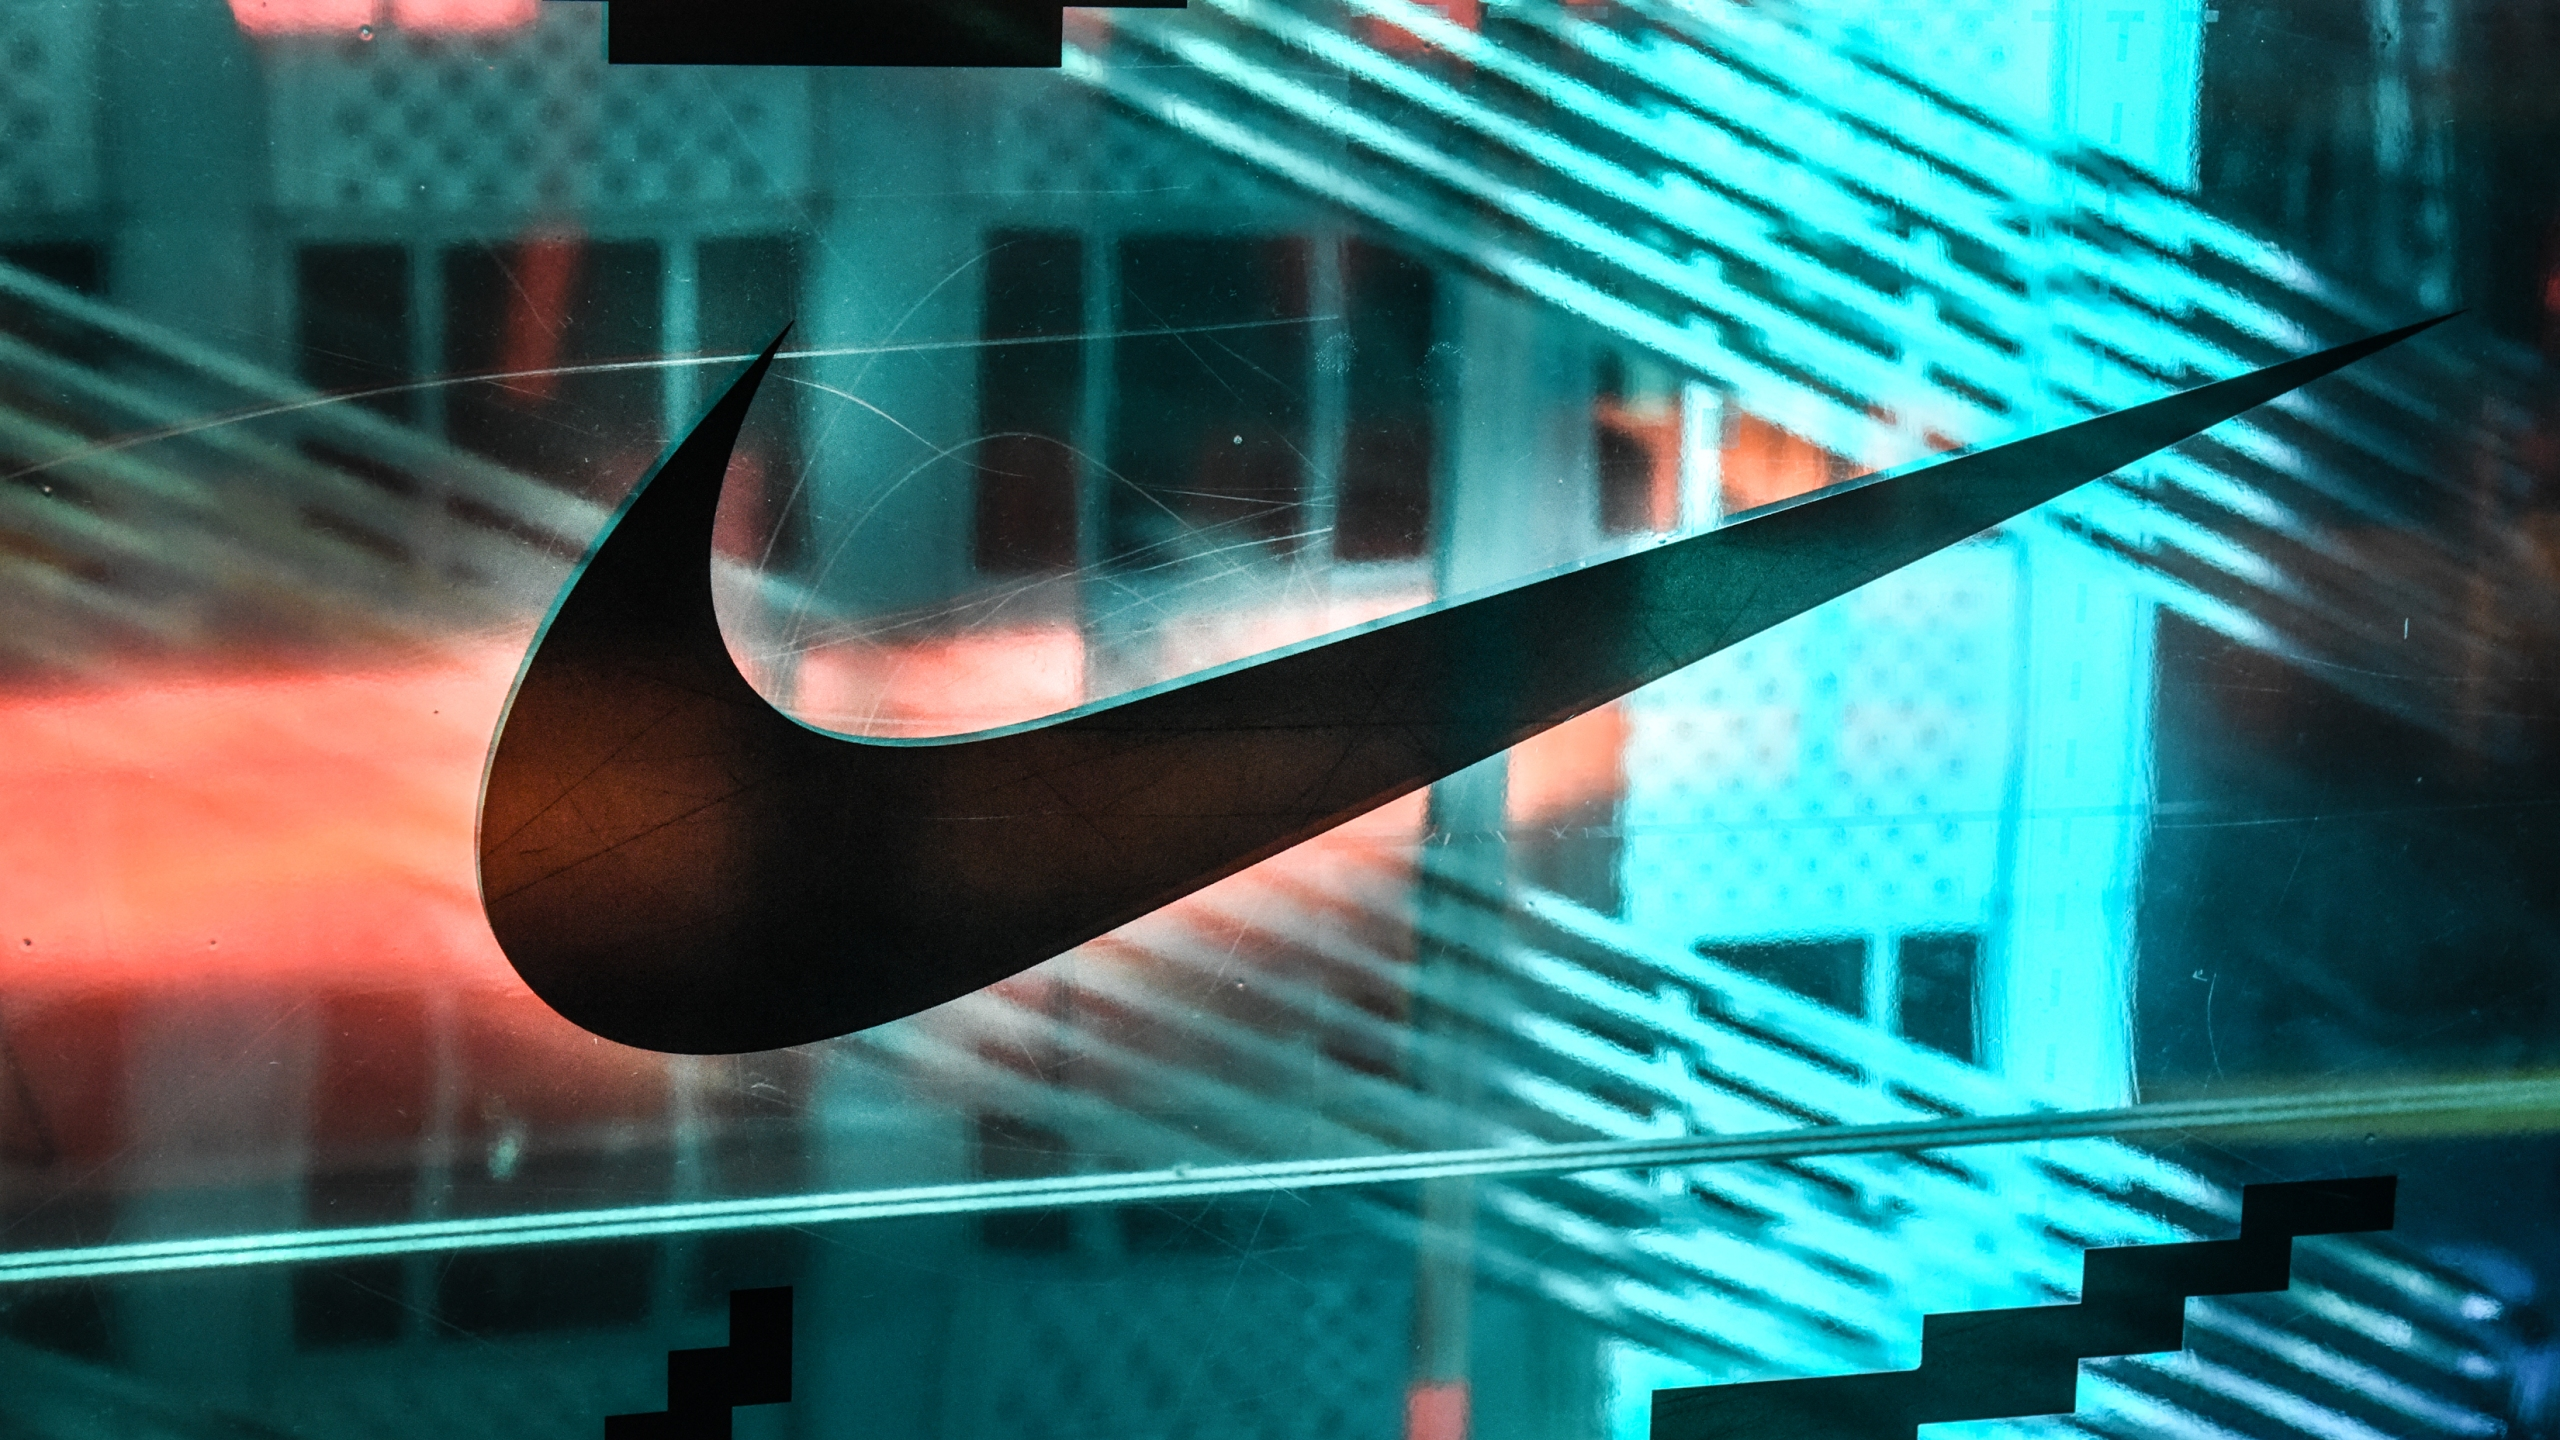 A Nike logo is seen at the Nike flagship store on 5th Avenue on Dec. 20, 2019 in New York City. (Stephanie Keith/Getty Images)